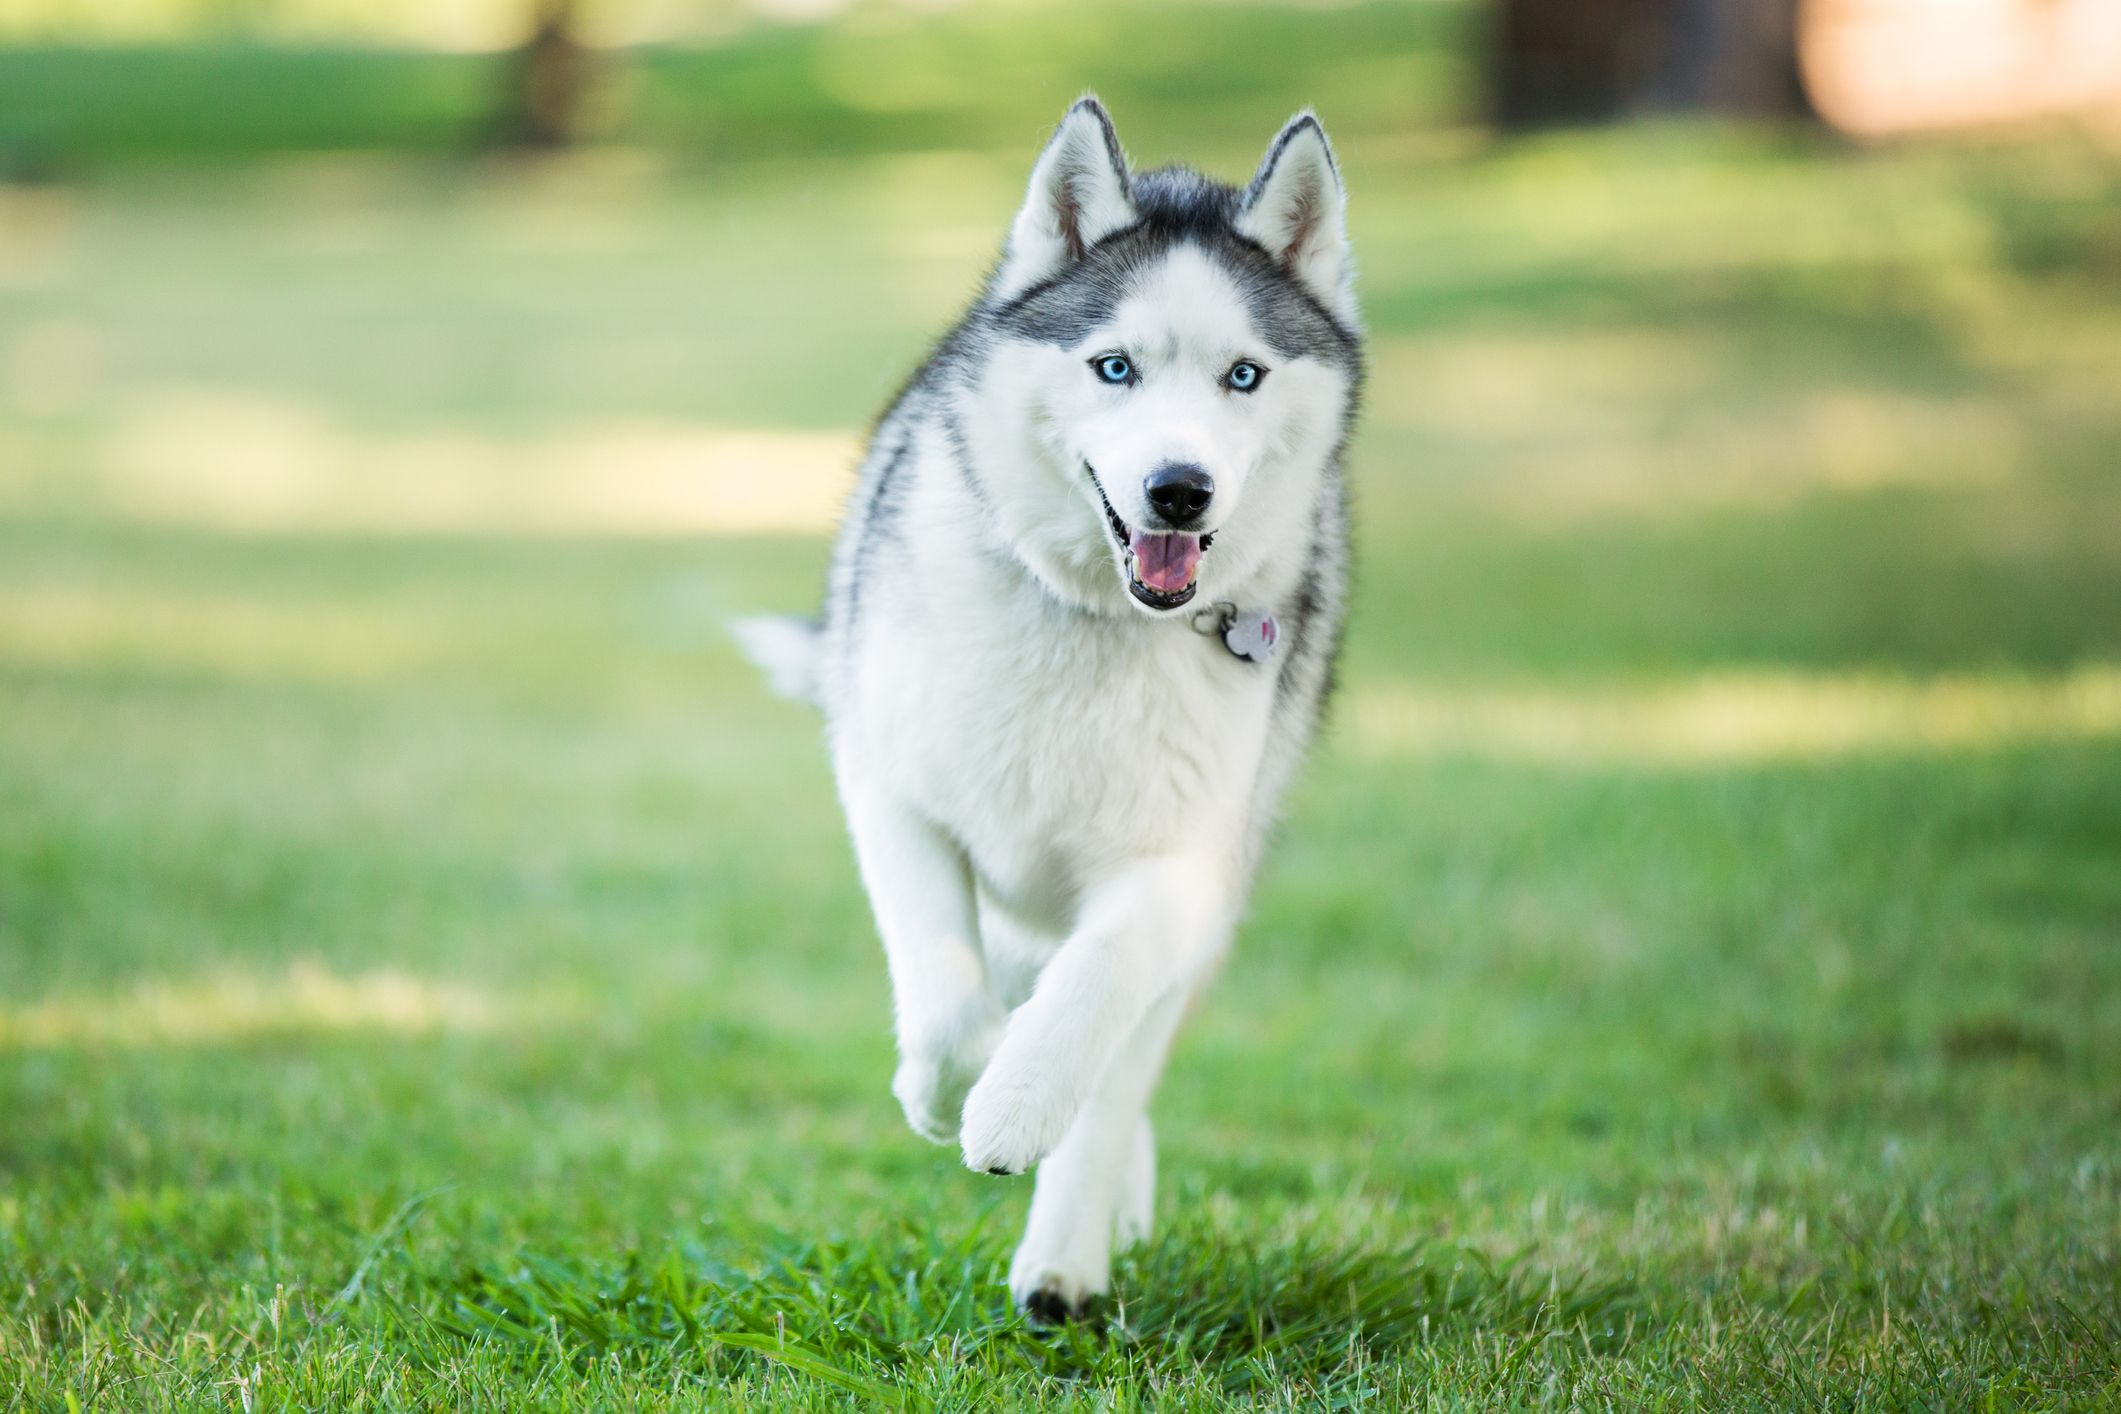 13 Wolf-Life Dog Breeds That Make Great Family Pets